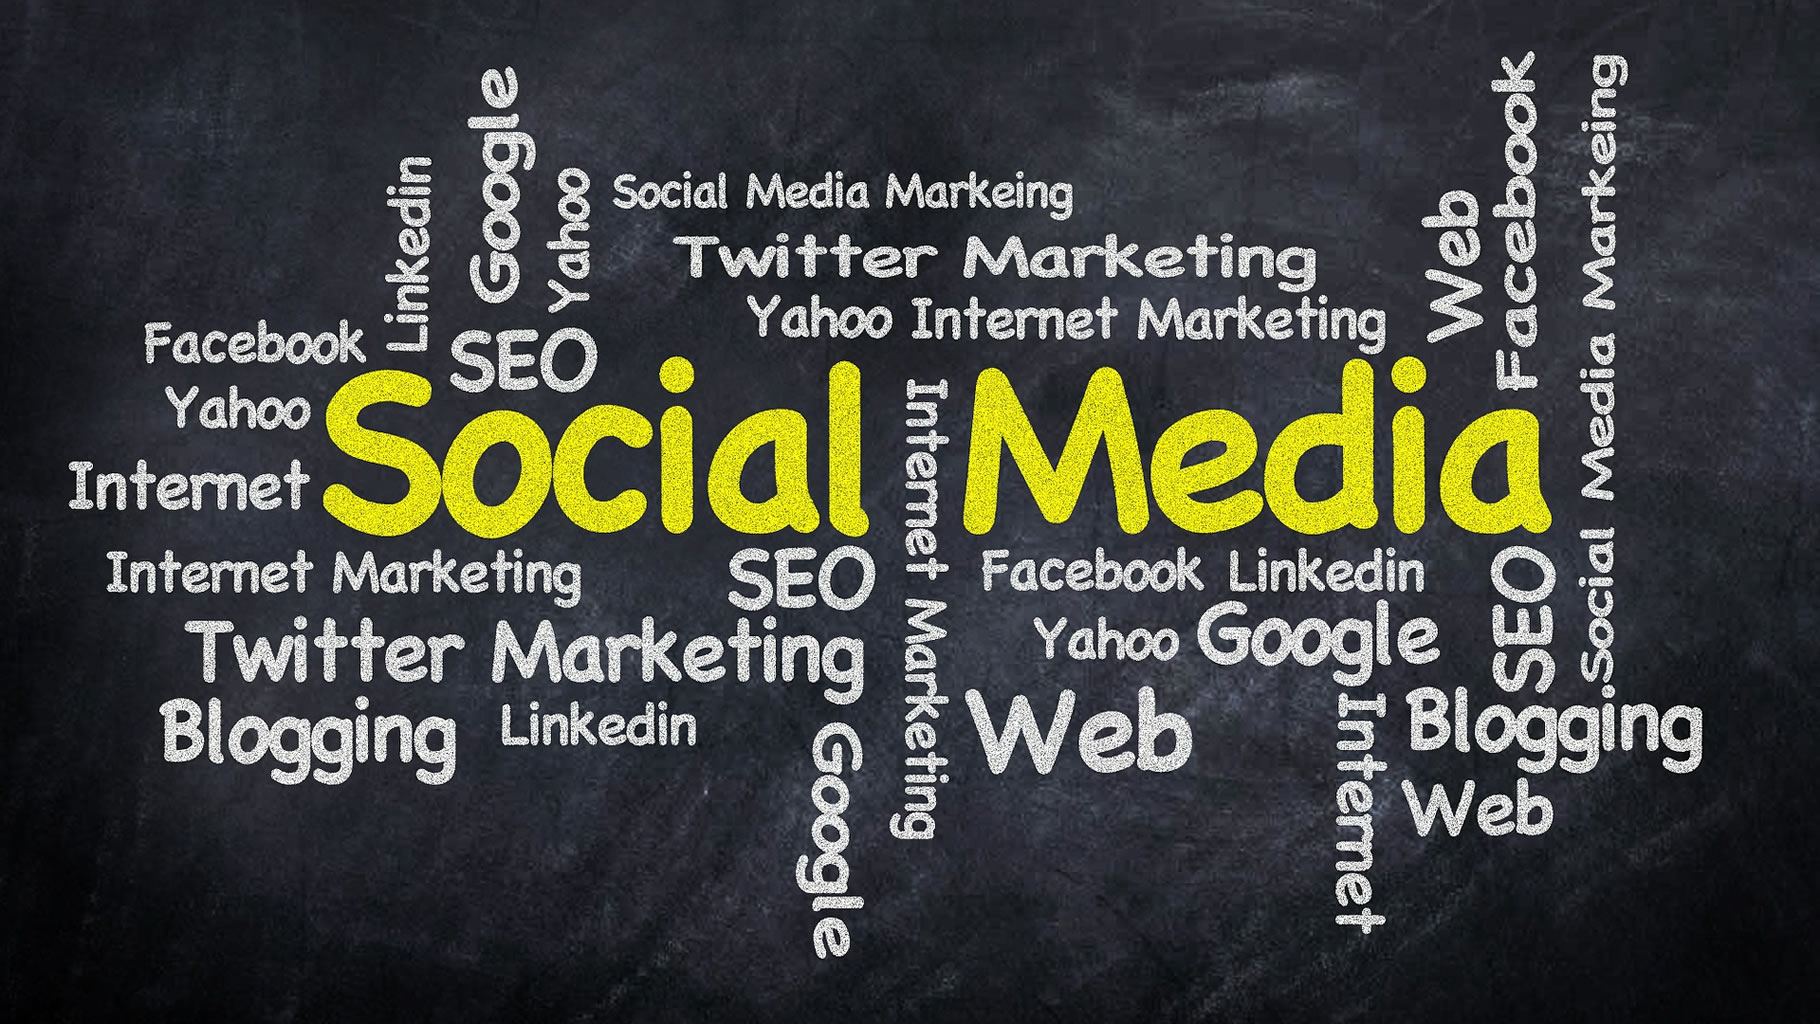 Social Media Marketing, It's all about Engagement